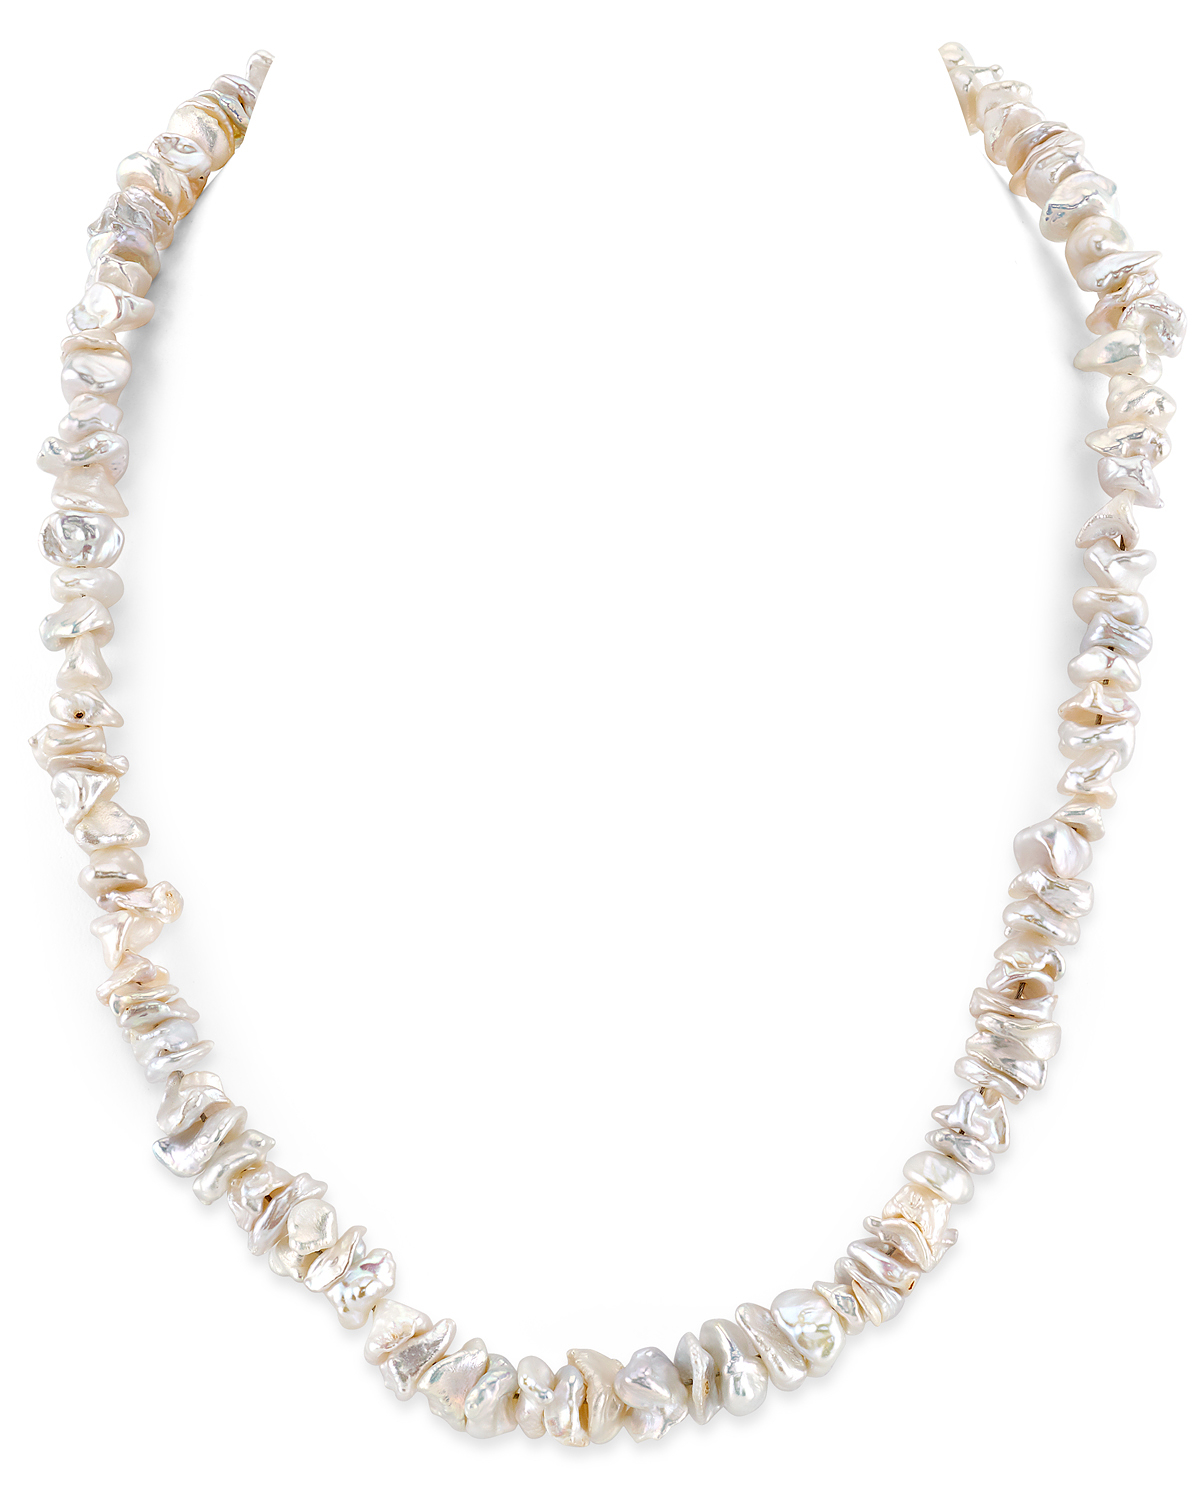 8-9mm White Freshwater Keshi Pearl Necklace